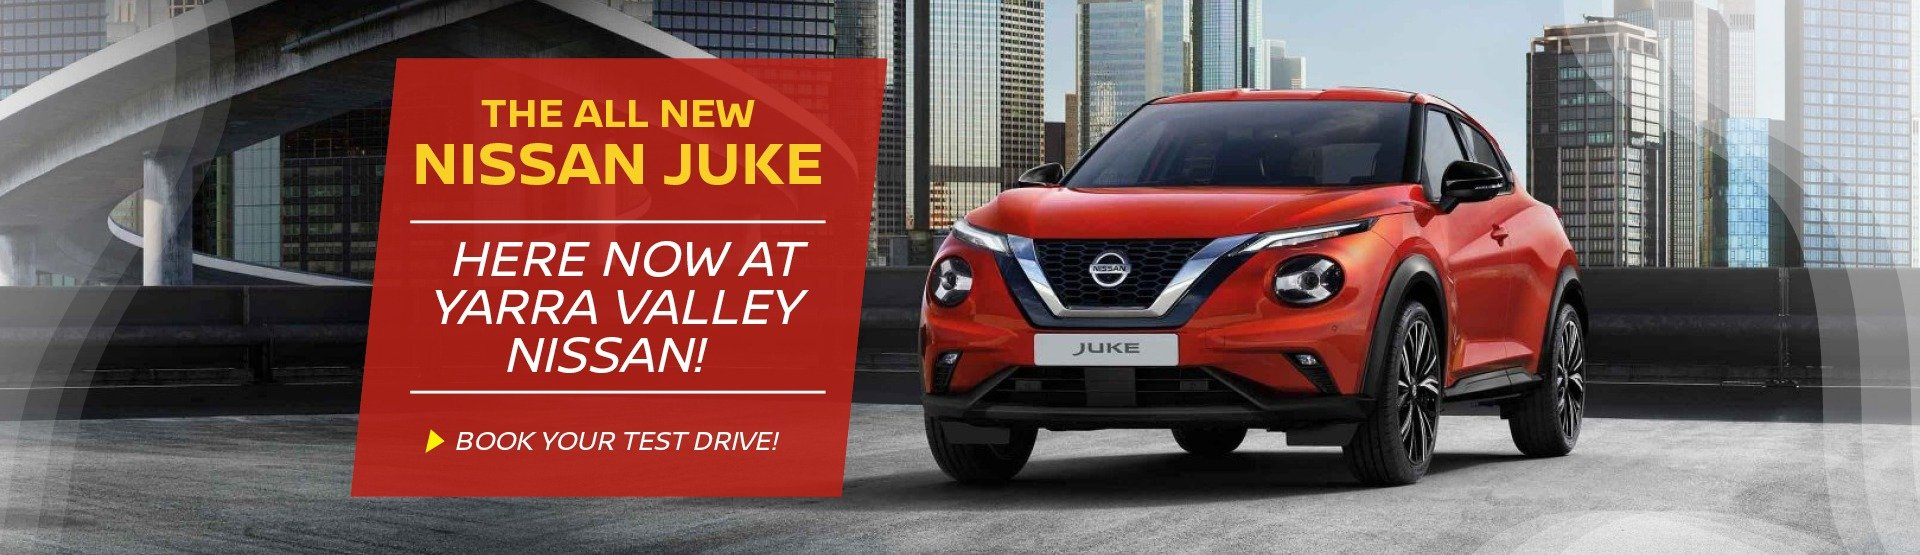 Yarra Valley Nissan - All New Juke